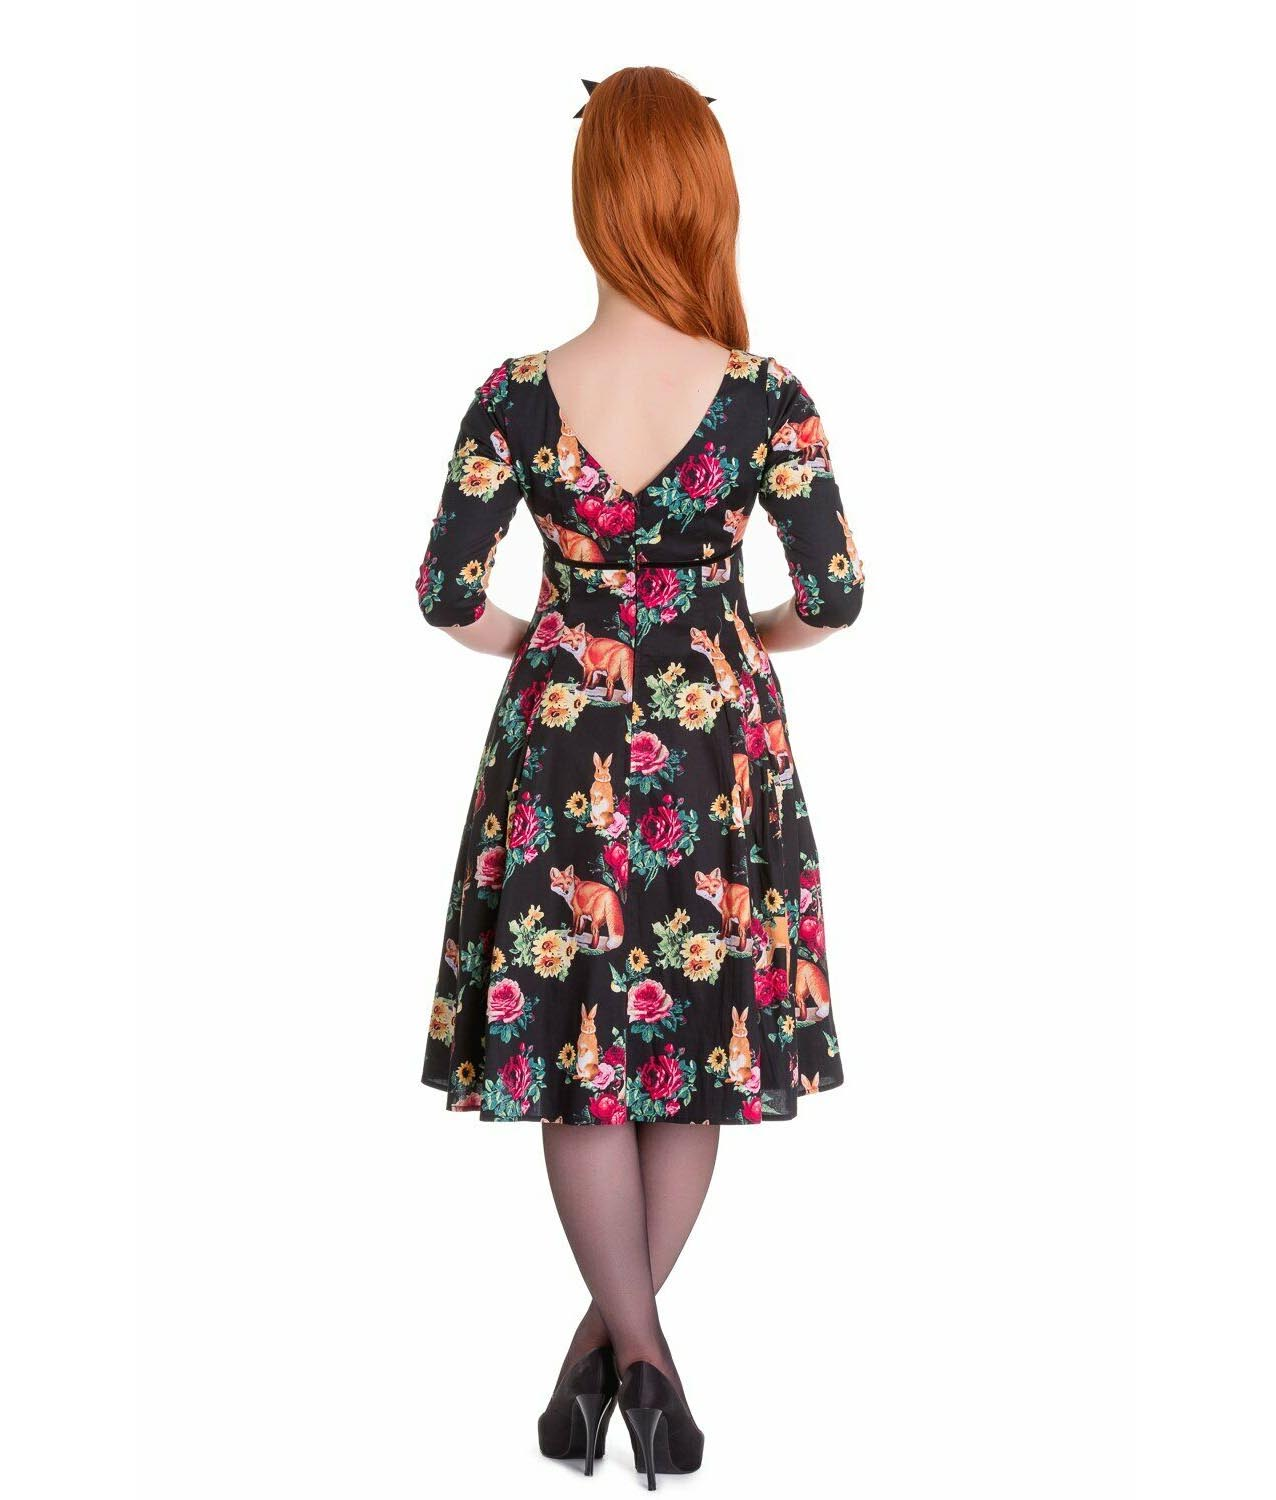 Hell-Bunny-40s-50s-Pin-Up-Vintage-Dress-HERMELINE-Woodland-Fox-All-Sizes thumbnail 5